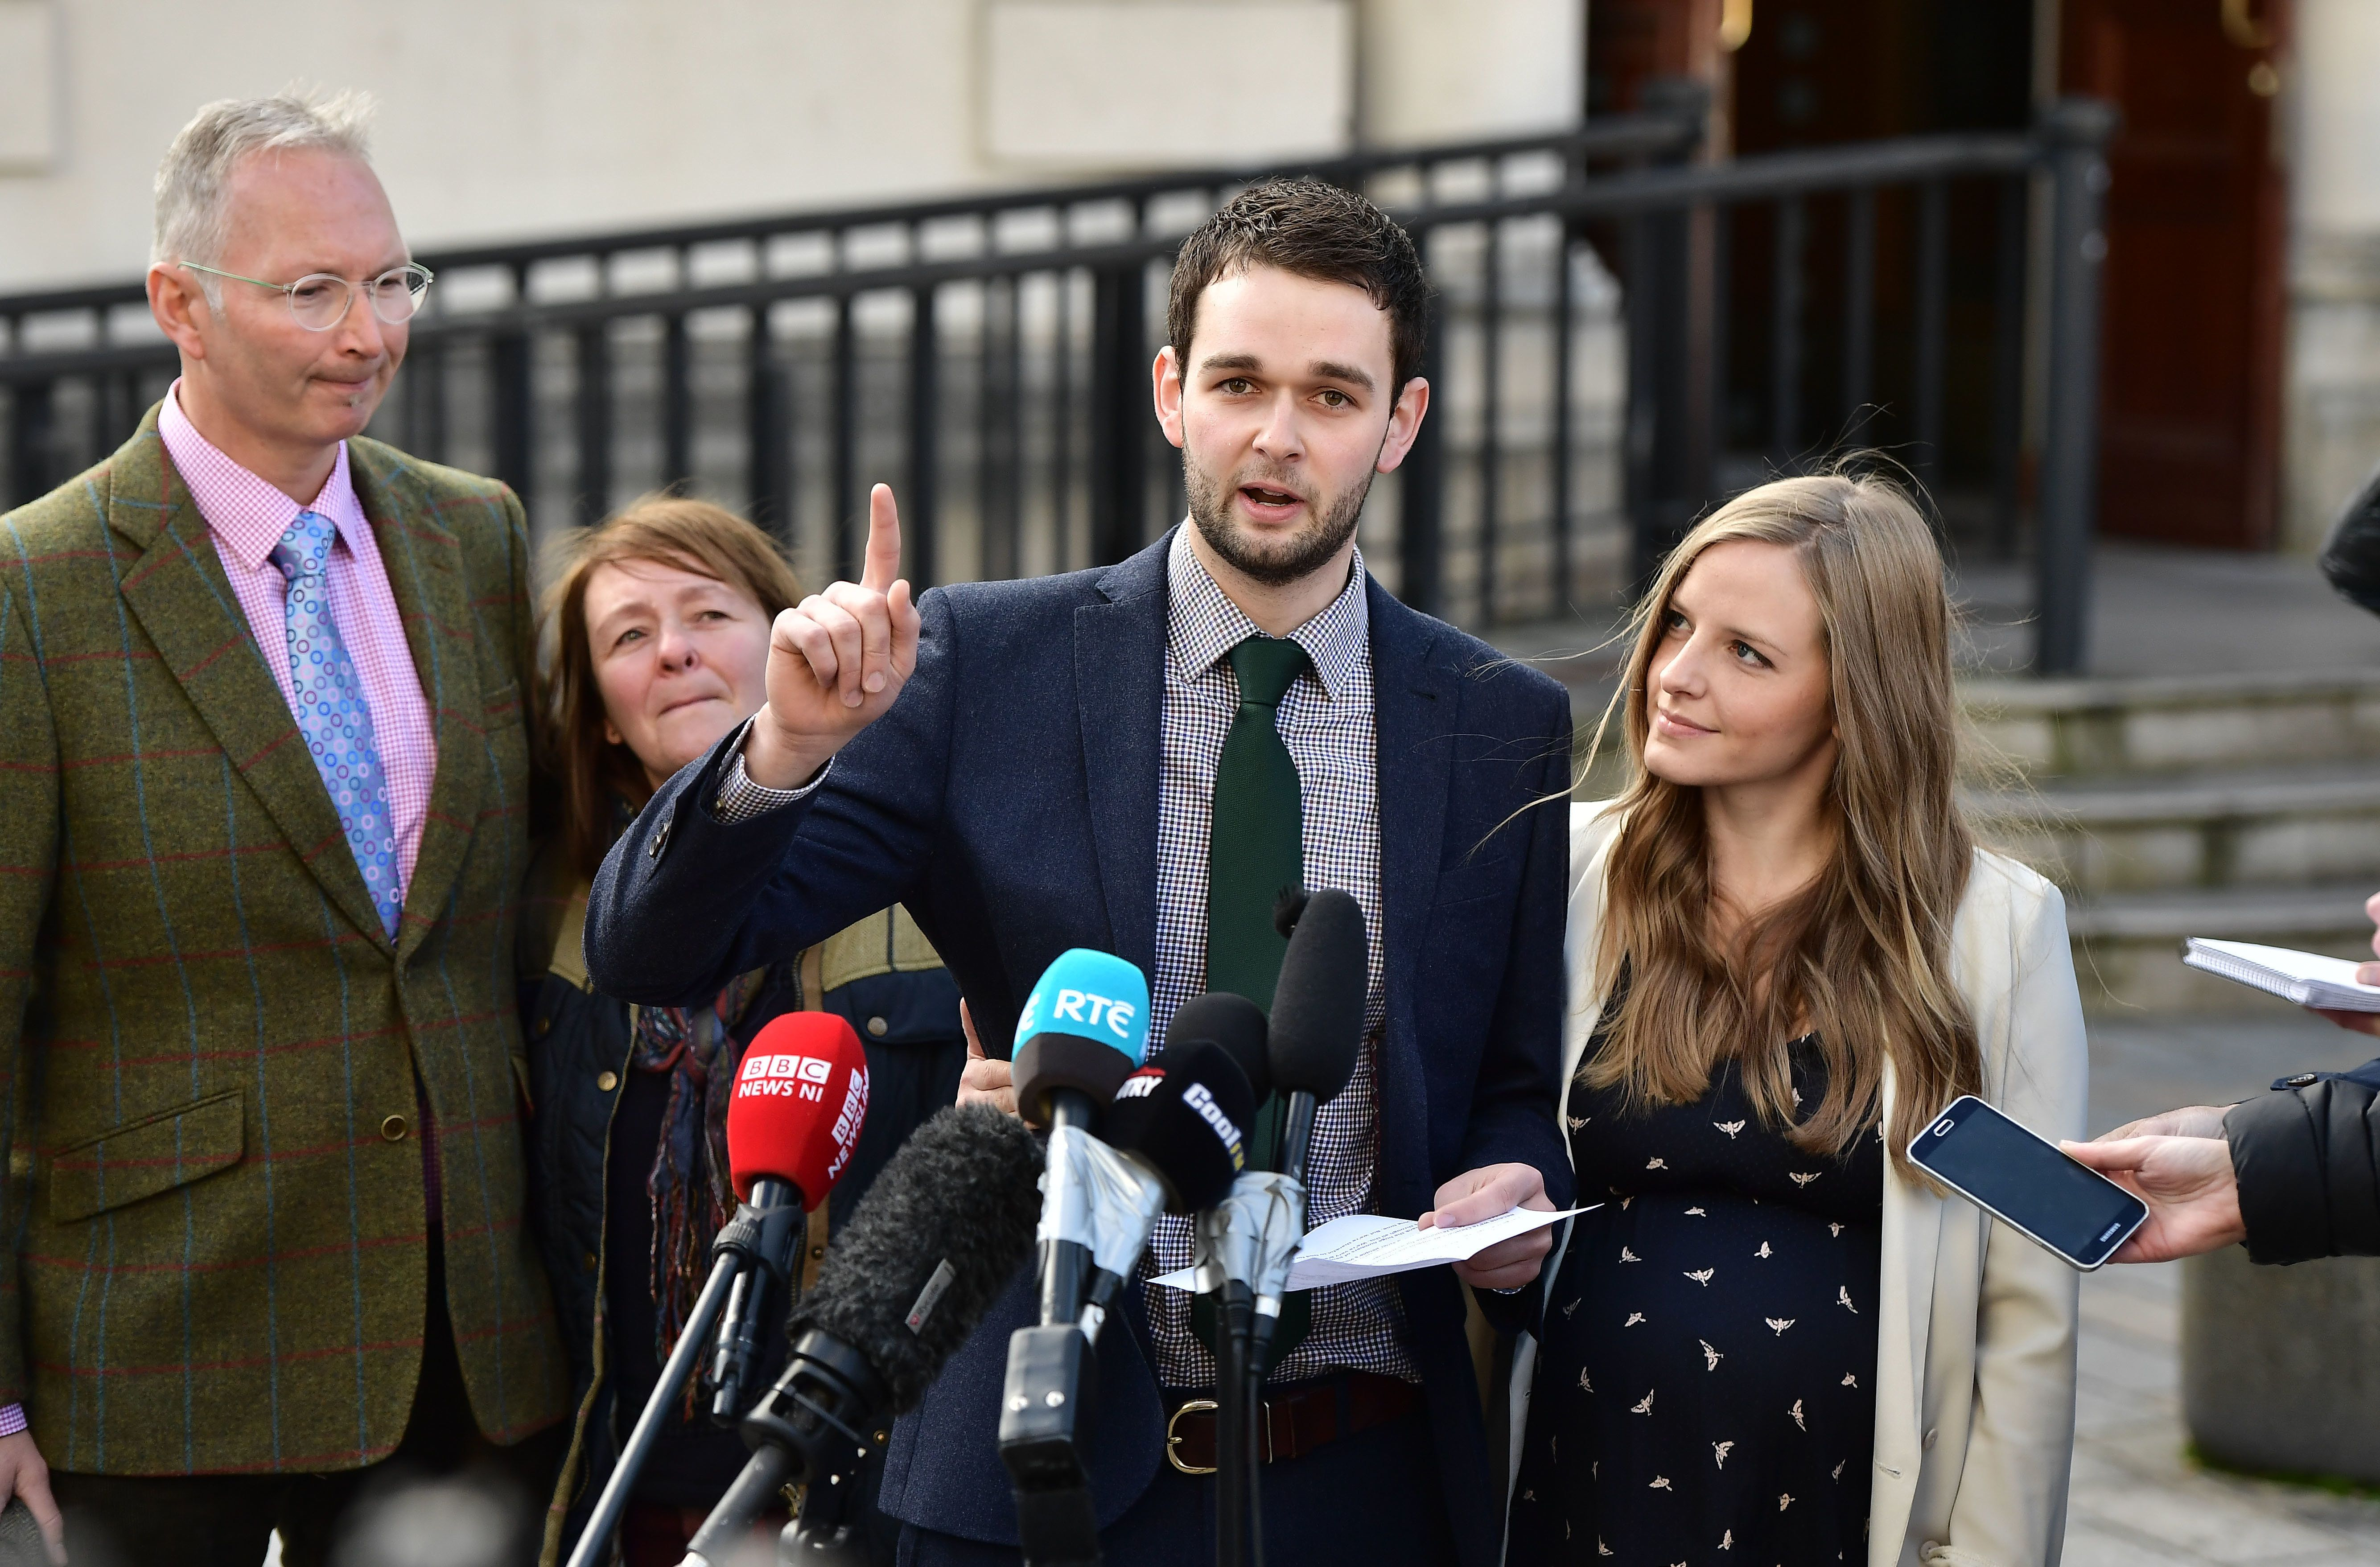 BELFAST, NORTHERN IRELAND - OCTOBER 24: Daniel McArthur (2nd R), managing director of Ashers Bakery and his wife Amy McArthur (R) hold a press conference outside Belfast high court alongside family members Colin McArthur (L) and Karen McArthur (2nd L) after losing their appeal in the so called 'Gay Cake' case on October 24, 2016 in Belfast, Northern Ireland. Ashers Bakery, a local business in Northern Ireland run by an evangelical Christian family was appealing a decision at Belfast Magistrates court last year that found that they had discriminated against gay activist Gareth Lee. Mr Lee had ordered a cake to mark international day against homophobia featuring the Sesame Street characters Bert and Ernie and bearing a pro gay marriage message. The three judges presiding over the case said it did not follow that icing a message meant you supported that message. Unlike the rest of the United Kindom or the Republic of Ireland same-sex marriage is not currently legal in Northern Ireland. Several attempts to change the law in the province have met with opposition from the largest political party, the Democratic Unionist Party. (Photo by Charles McQuillan/Getty Images)